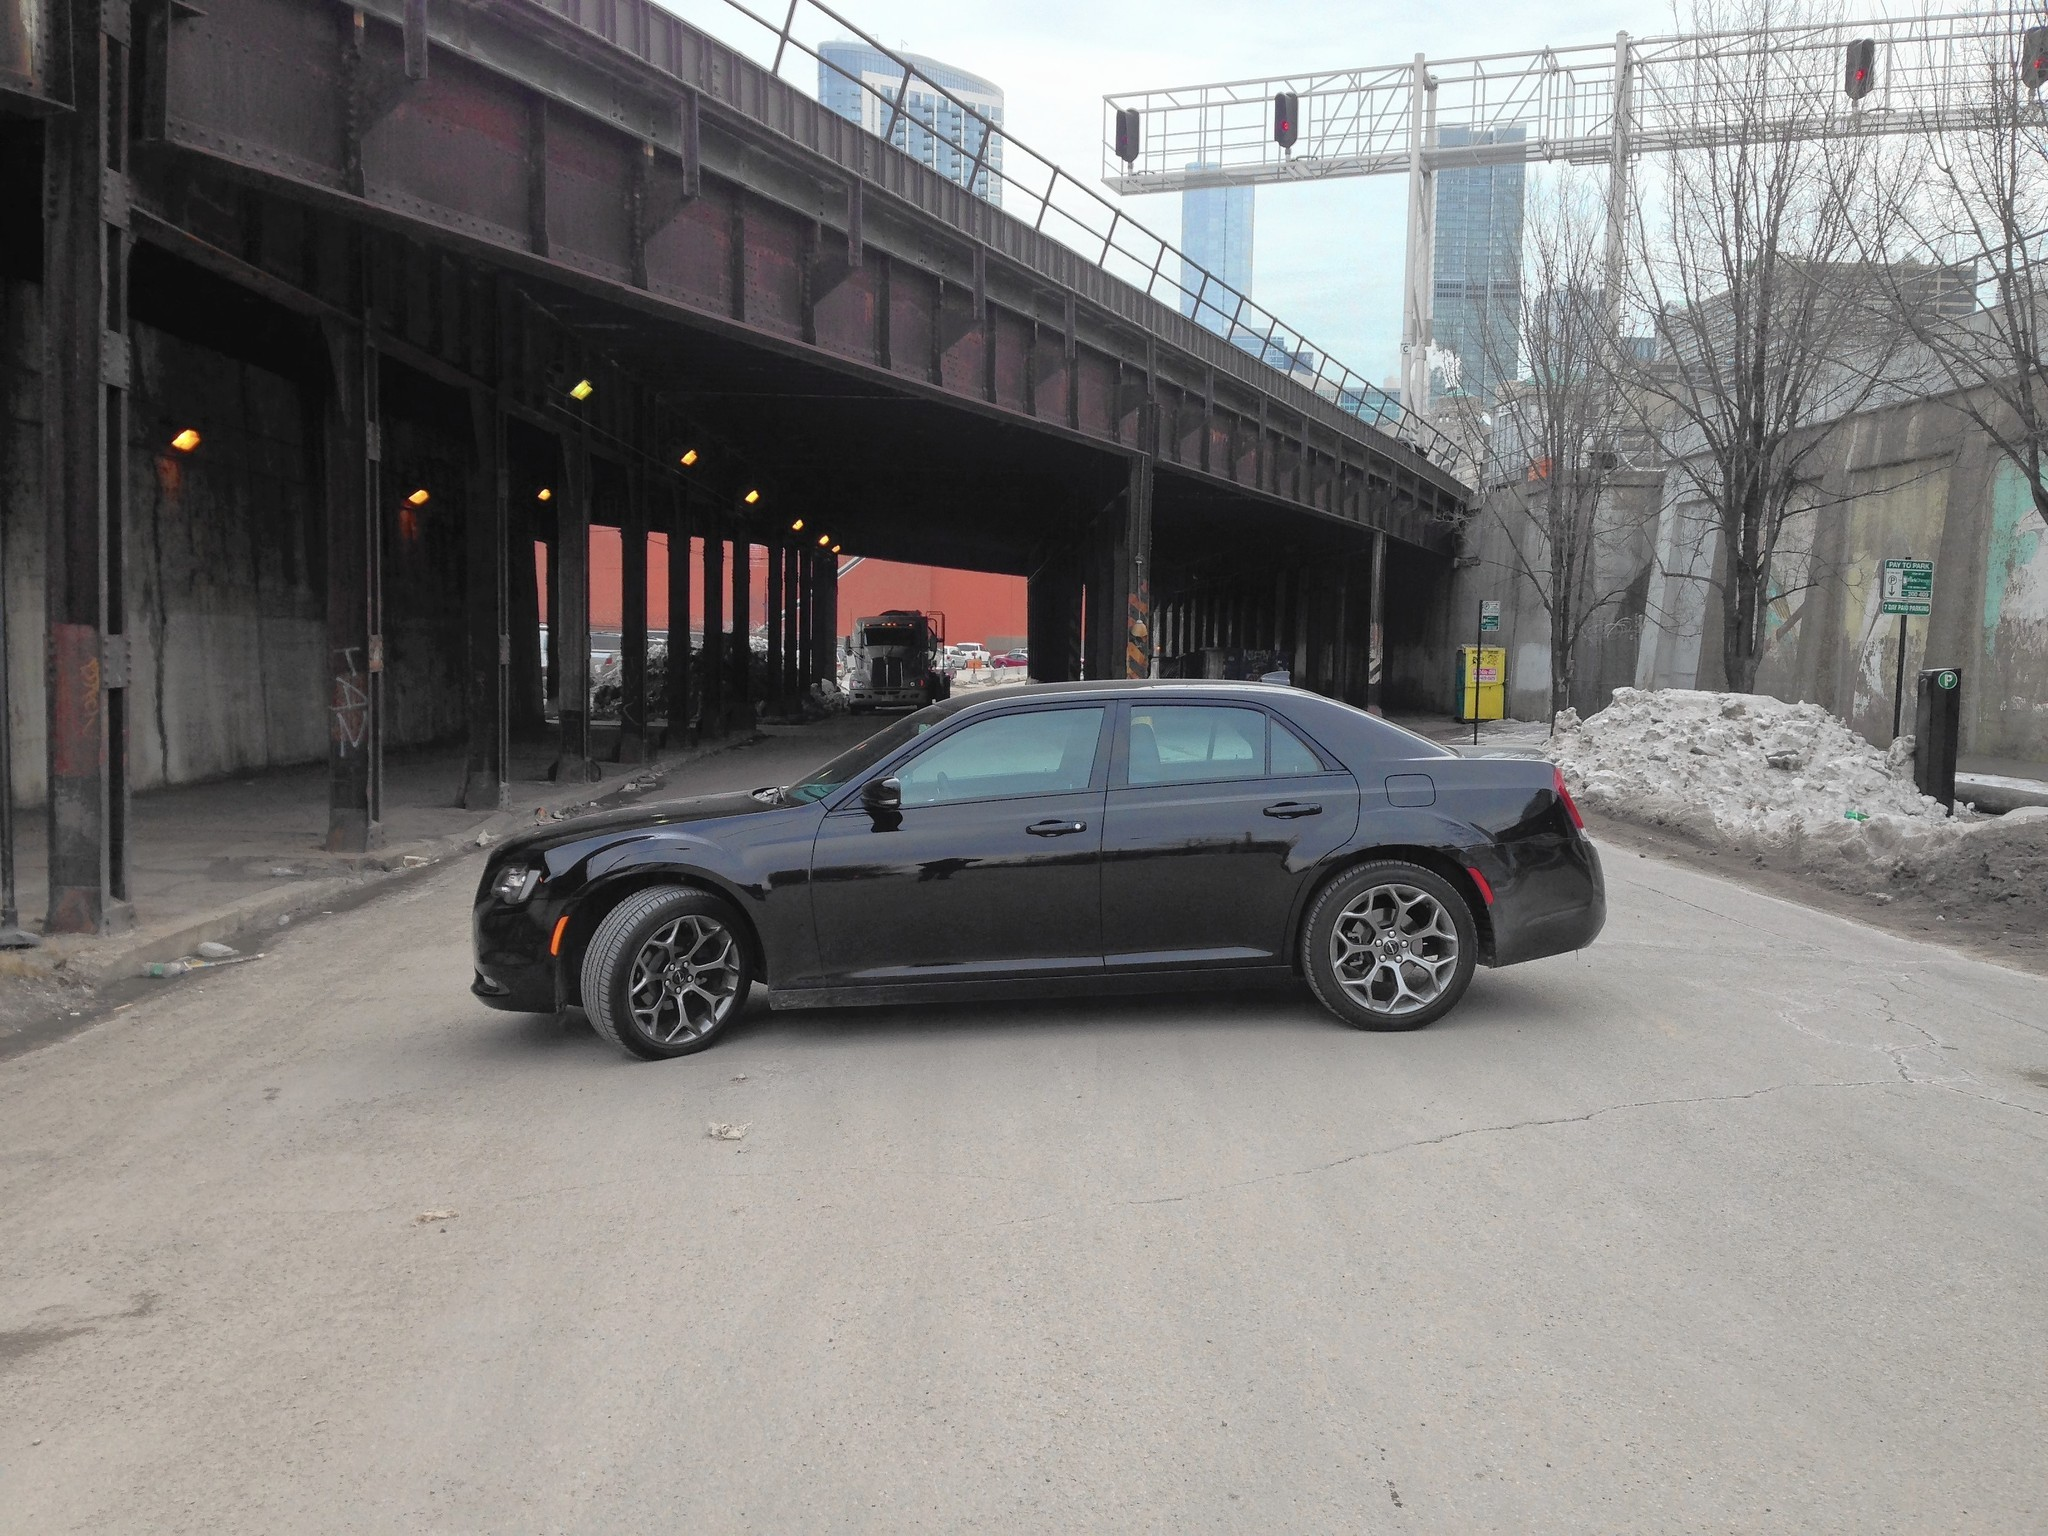 2015 Chrysler 300S hits all the right points